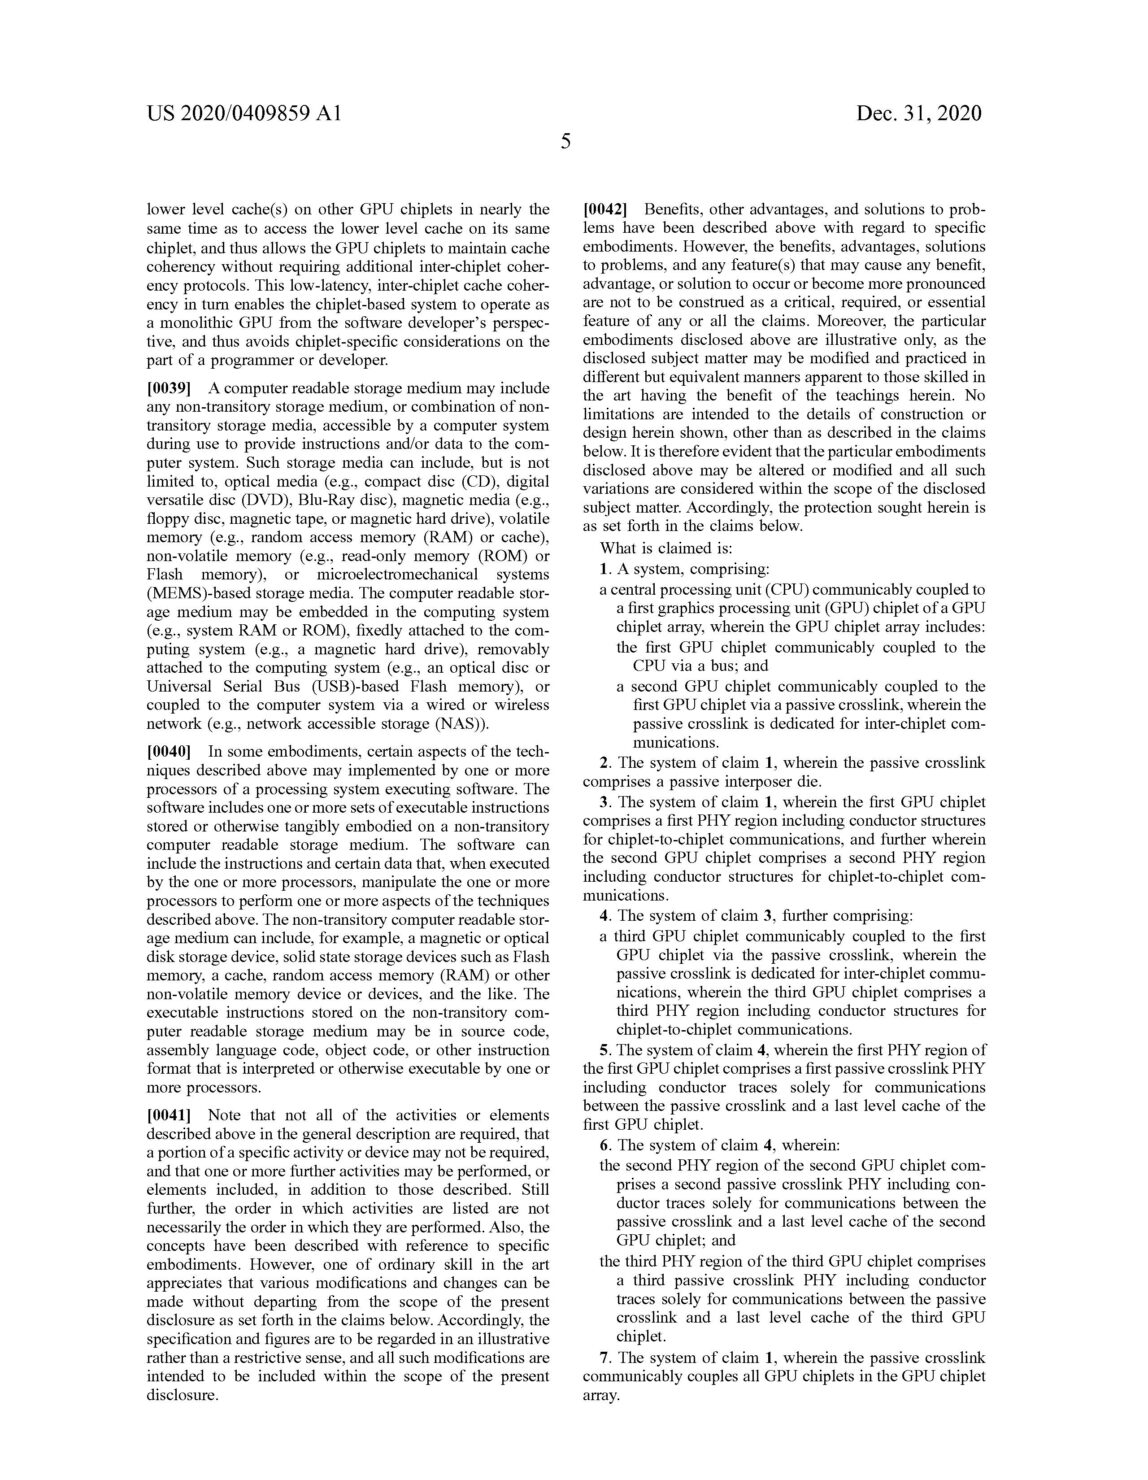 us20200409859a1-page-012